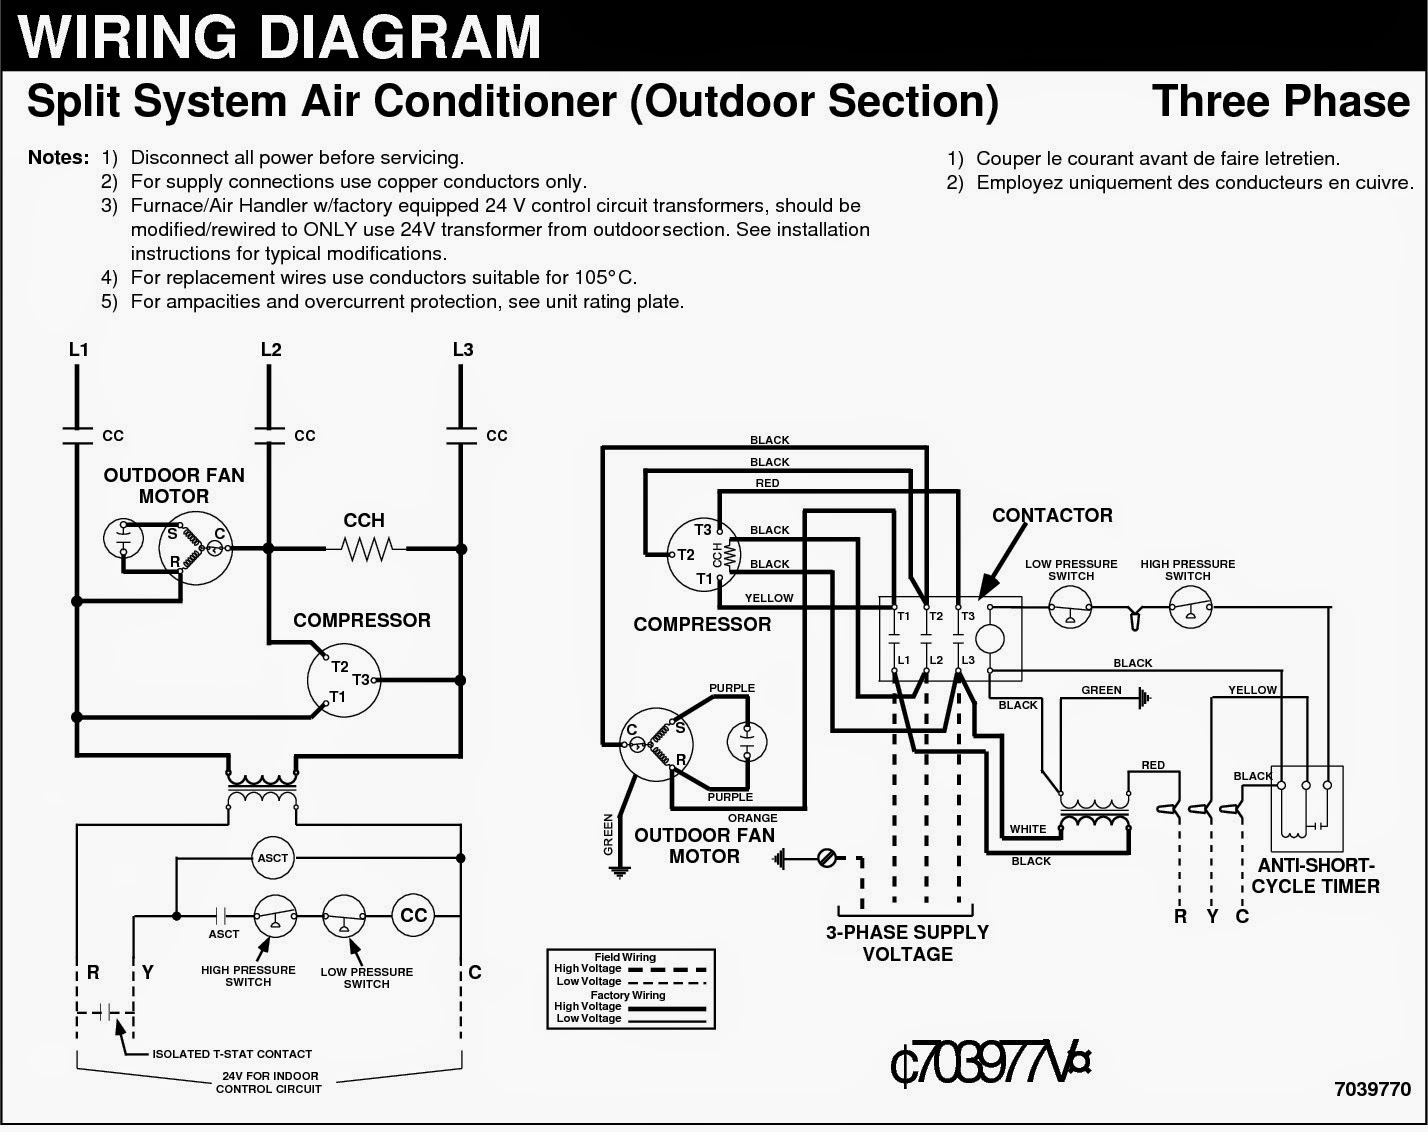 air conditioner contactor wiring diagram on air images free 3 Pole Contactor Wiring Diagram air conditioner contactor wiring diagram 8 air conditioner contactor problems air conditioning single pole contactor wiring schematics 3 pole contactor wiring diagram